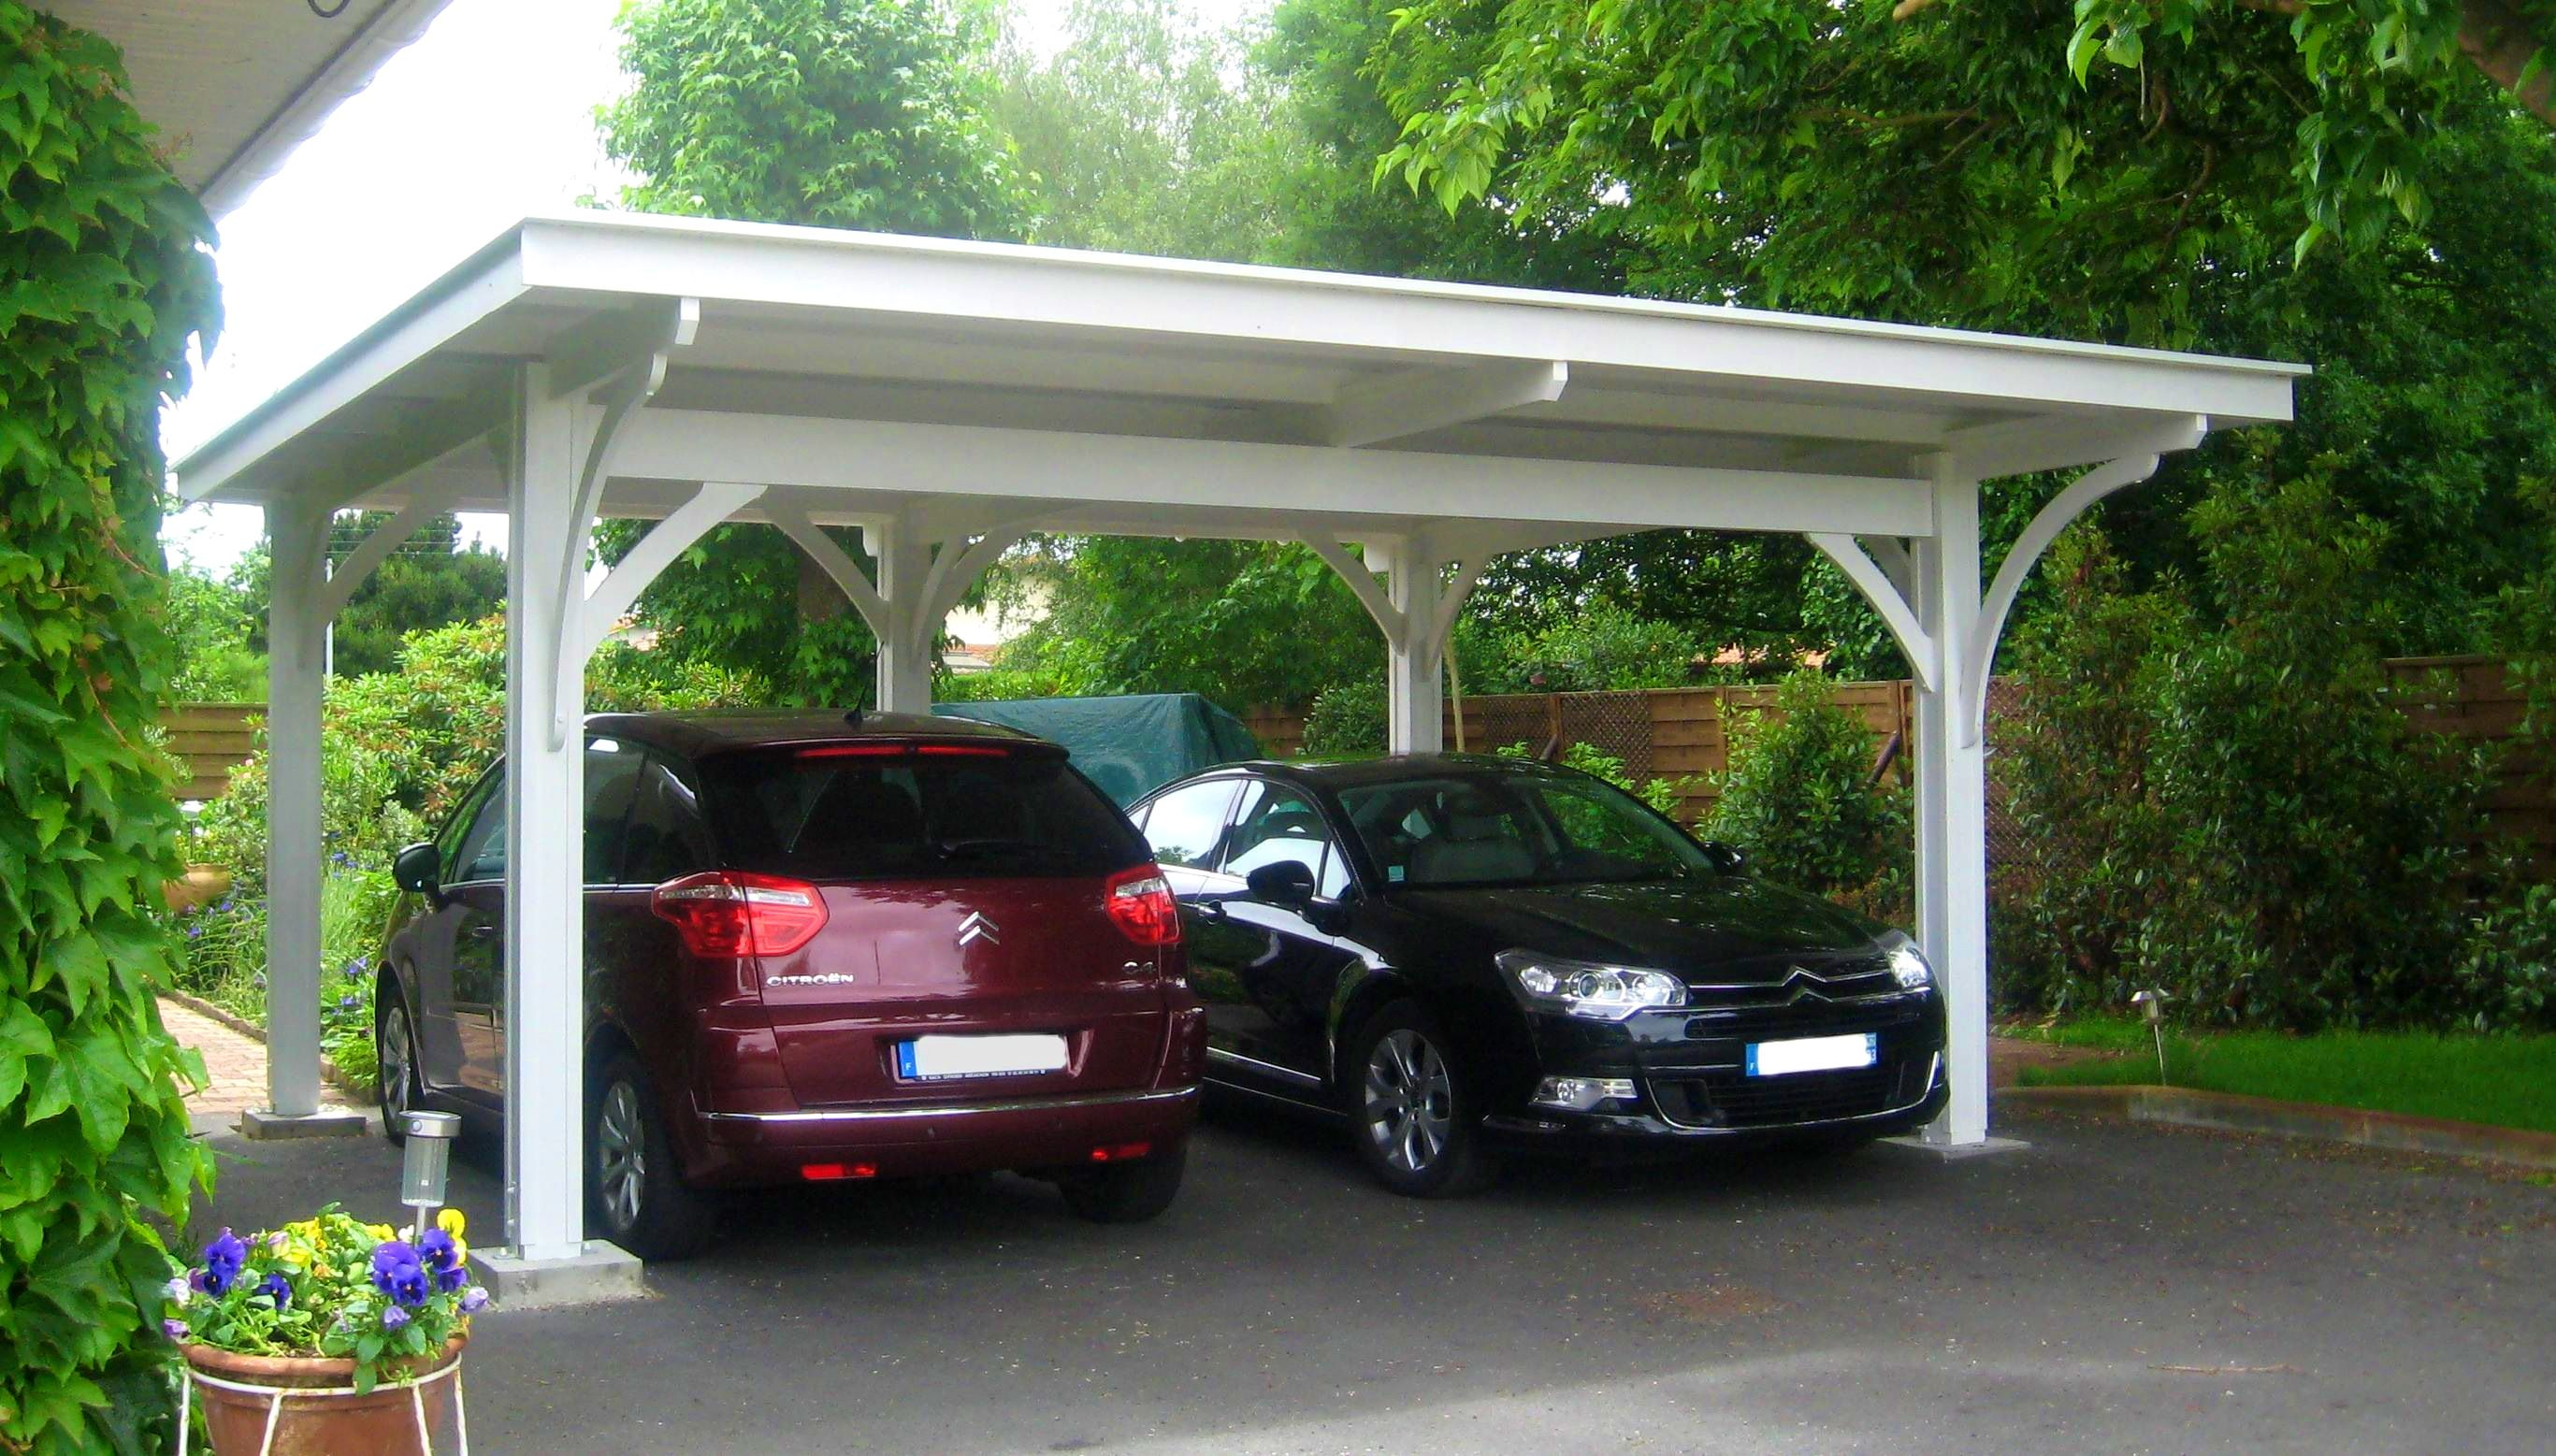 bedroom agreeable images about carport ideas designs car storage plans ffbcfebcabbbadbd tandem 2. Black Bedroom Furniture Sets. Home Design Ideas